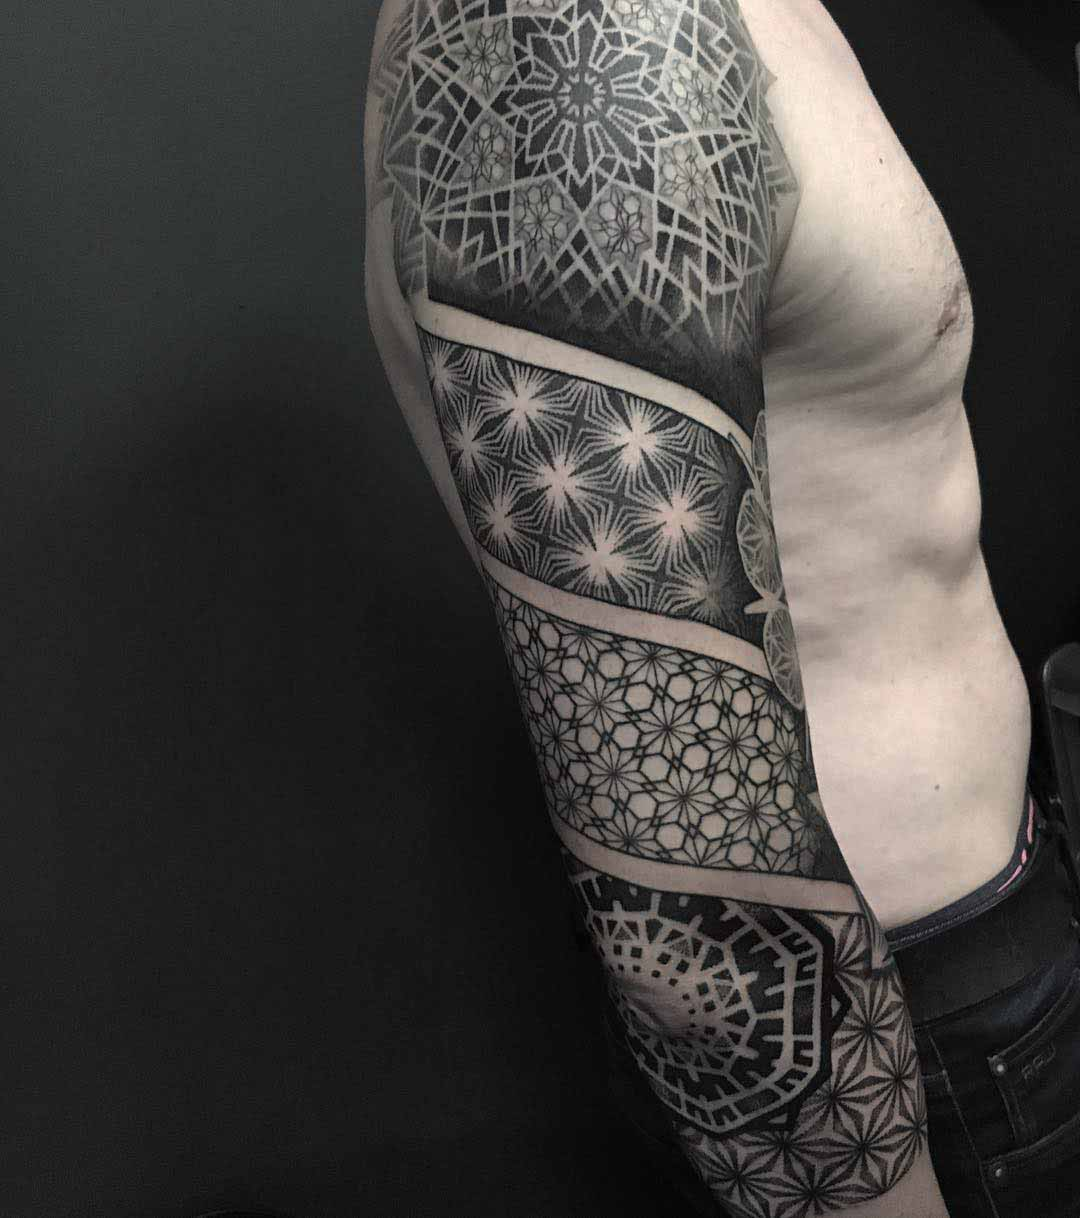 tattoo sleeve dotwork pattern